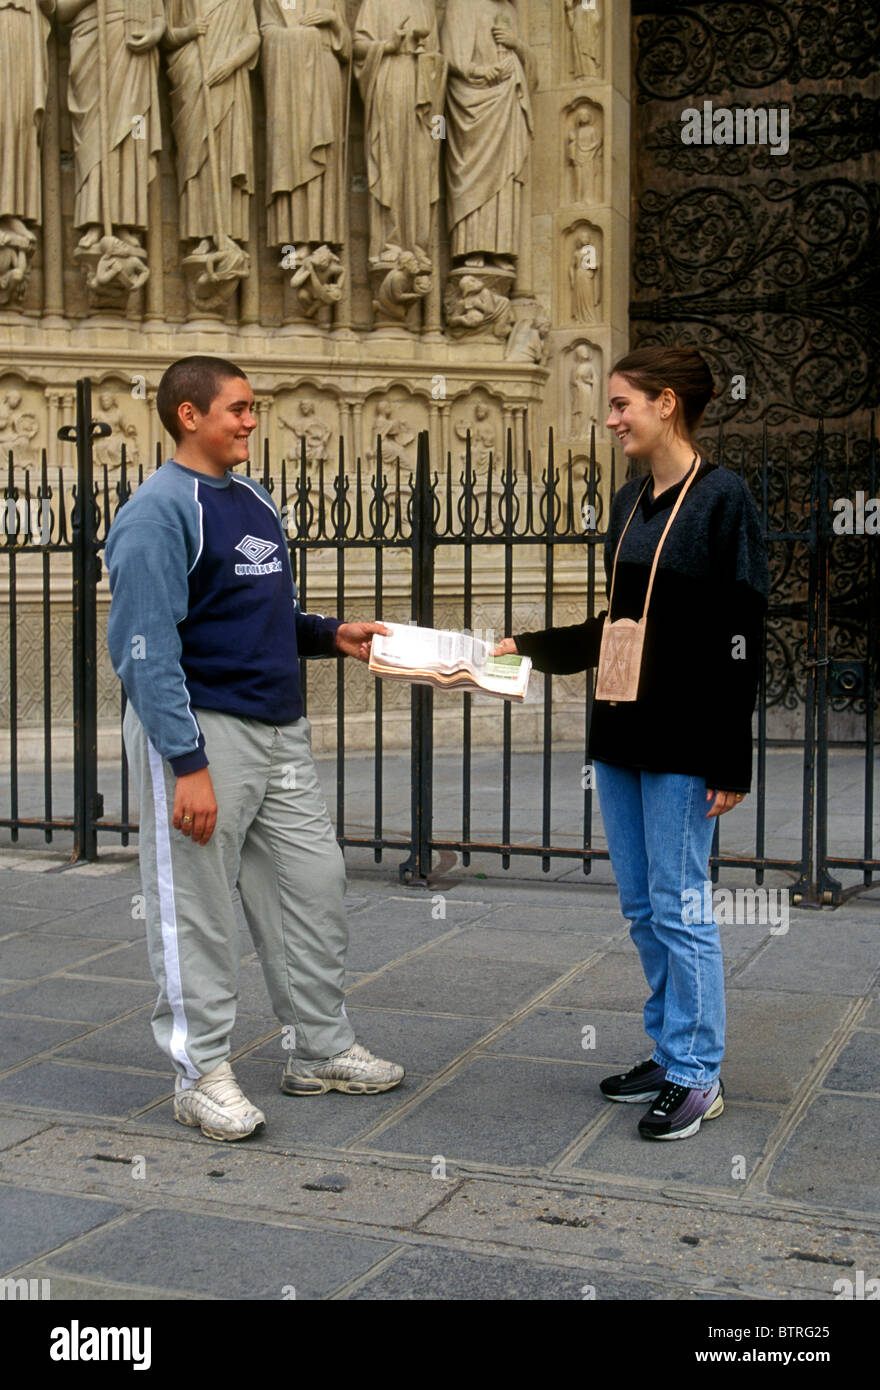 French People Students Lycee Charlemagne Stock Photos: French People Male Teens Teenage Stock Photos & French